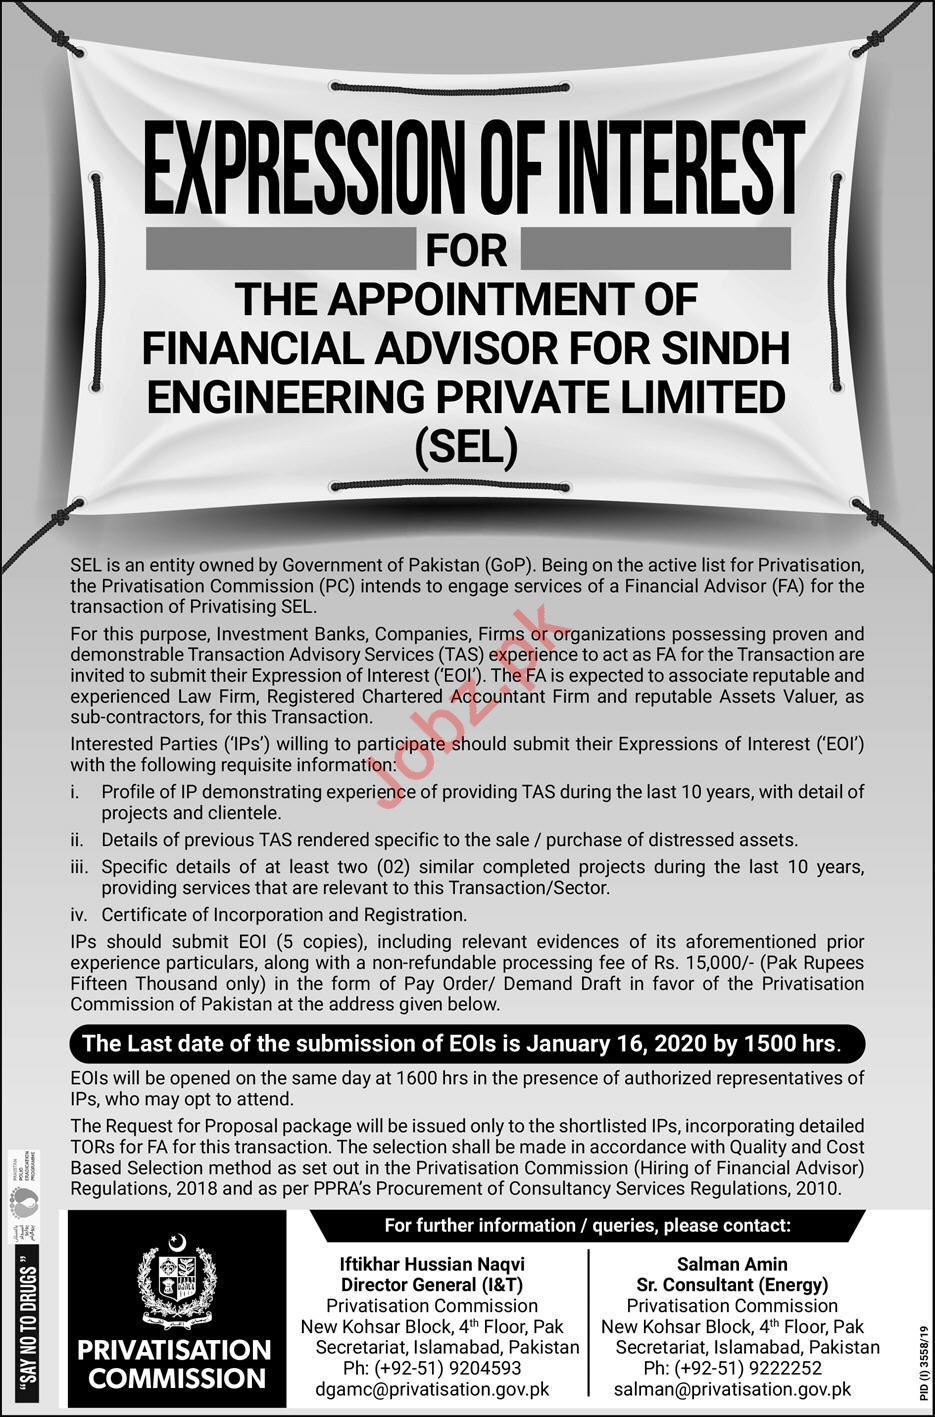 Sindh Engineering Private Ltd SEL Job For Financial Advisor